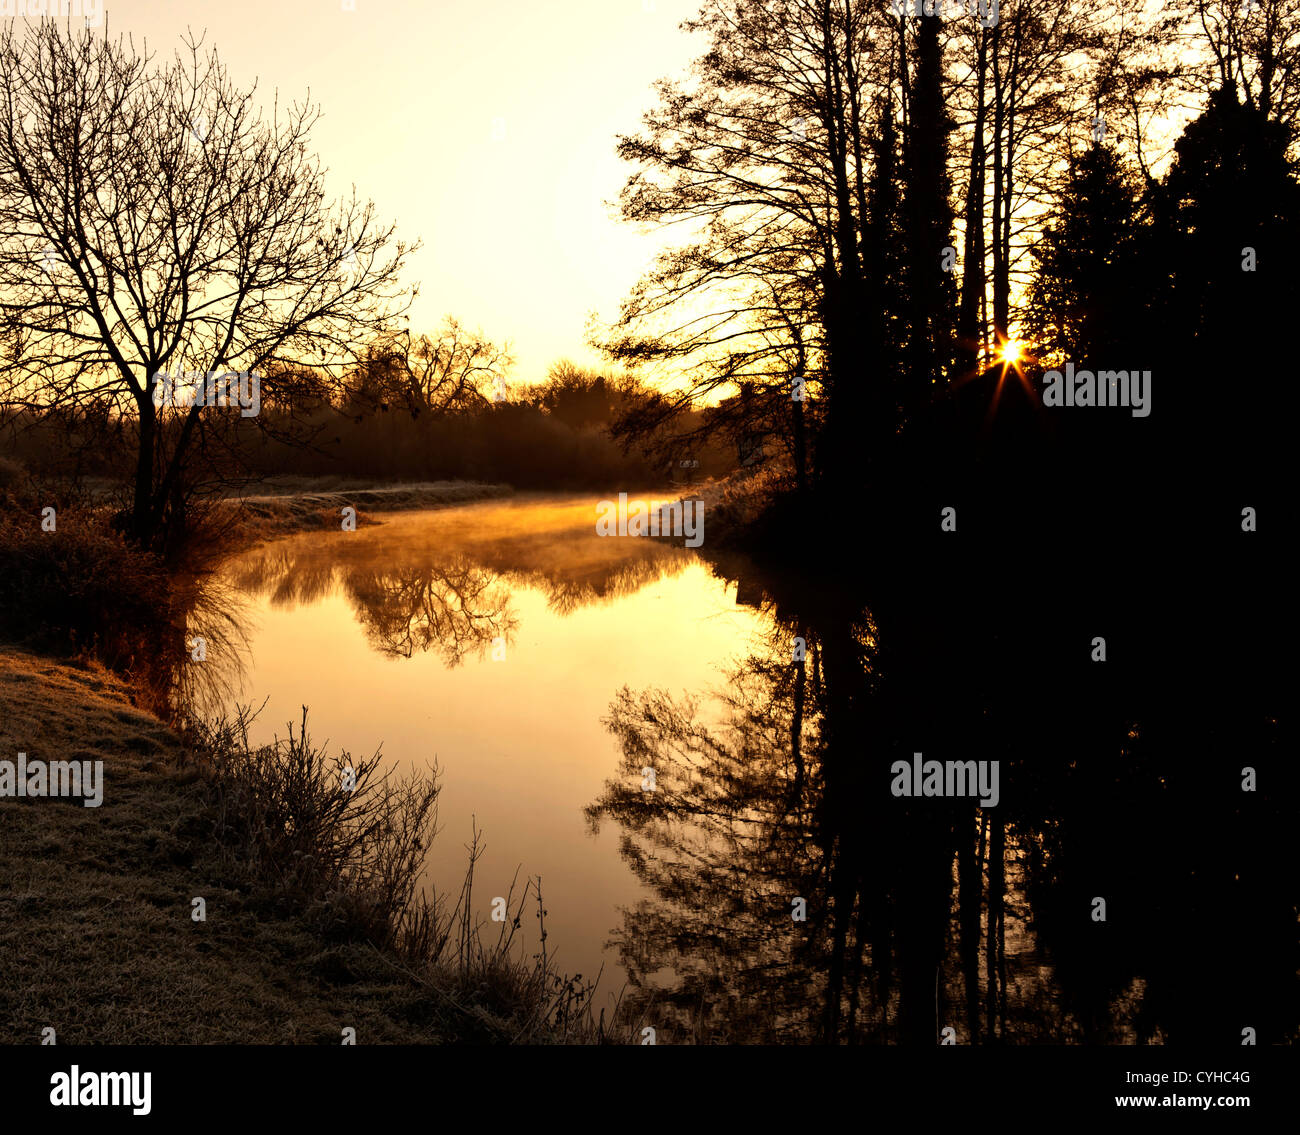 Dawn on the Kennet & Avon canal at Calcot near Reading Berkshire in January Stock Photo